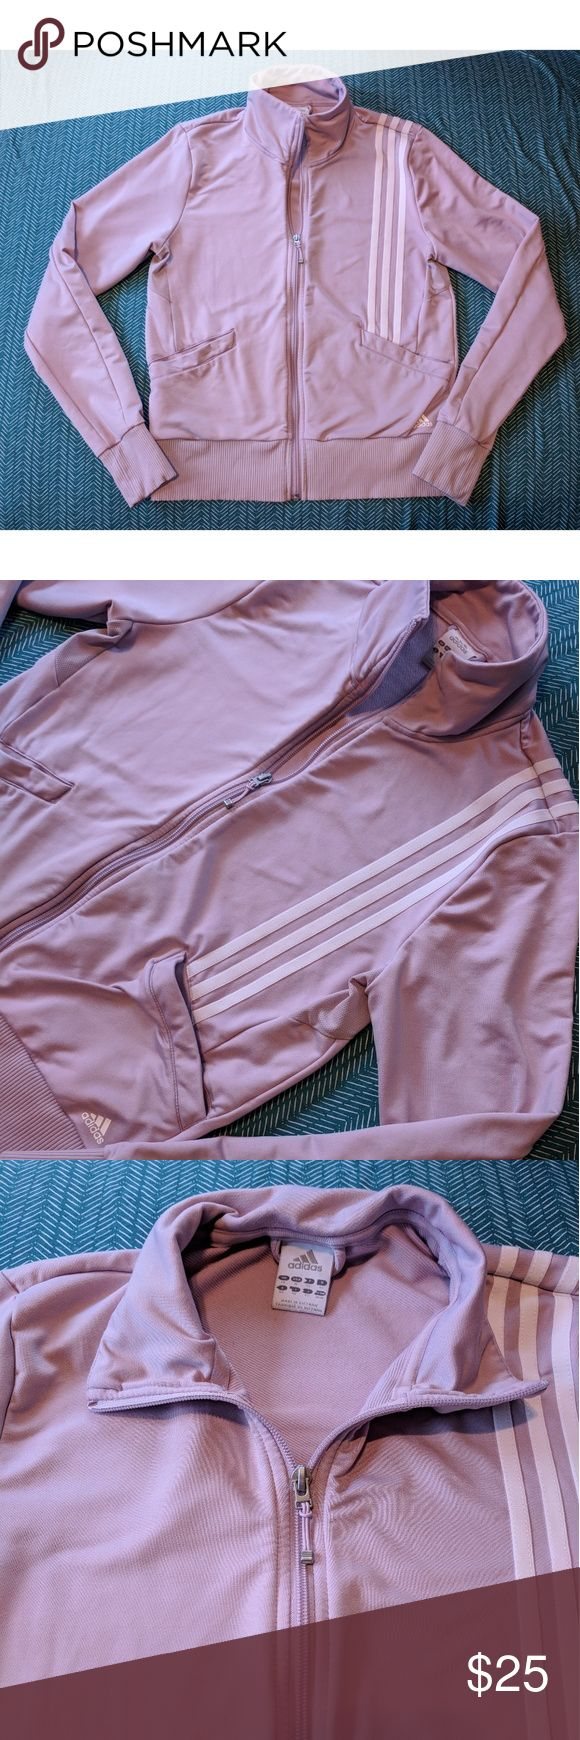 "Soft Purple Women's Adidas Zip Up Sweatshirt Beautiful soft purple jacket from Adidas. Women's size medium, great condition. It has pockets on the front and stripes down the left side front and back. Zipper works well and it is so soft!  22 1/2"" long 16"" wide adidas Tops Sweatshirts & Hoodies"